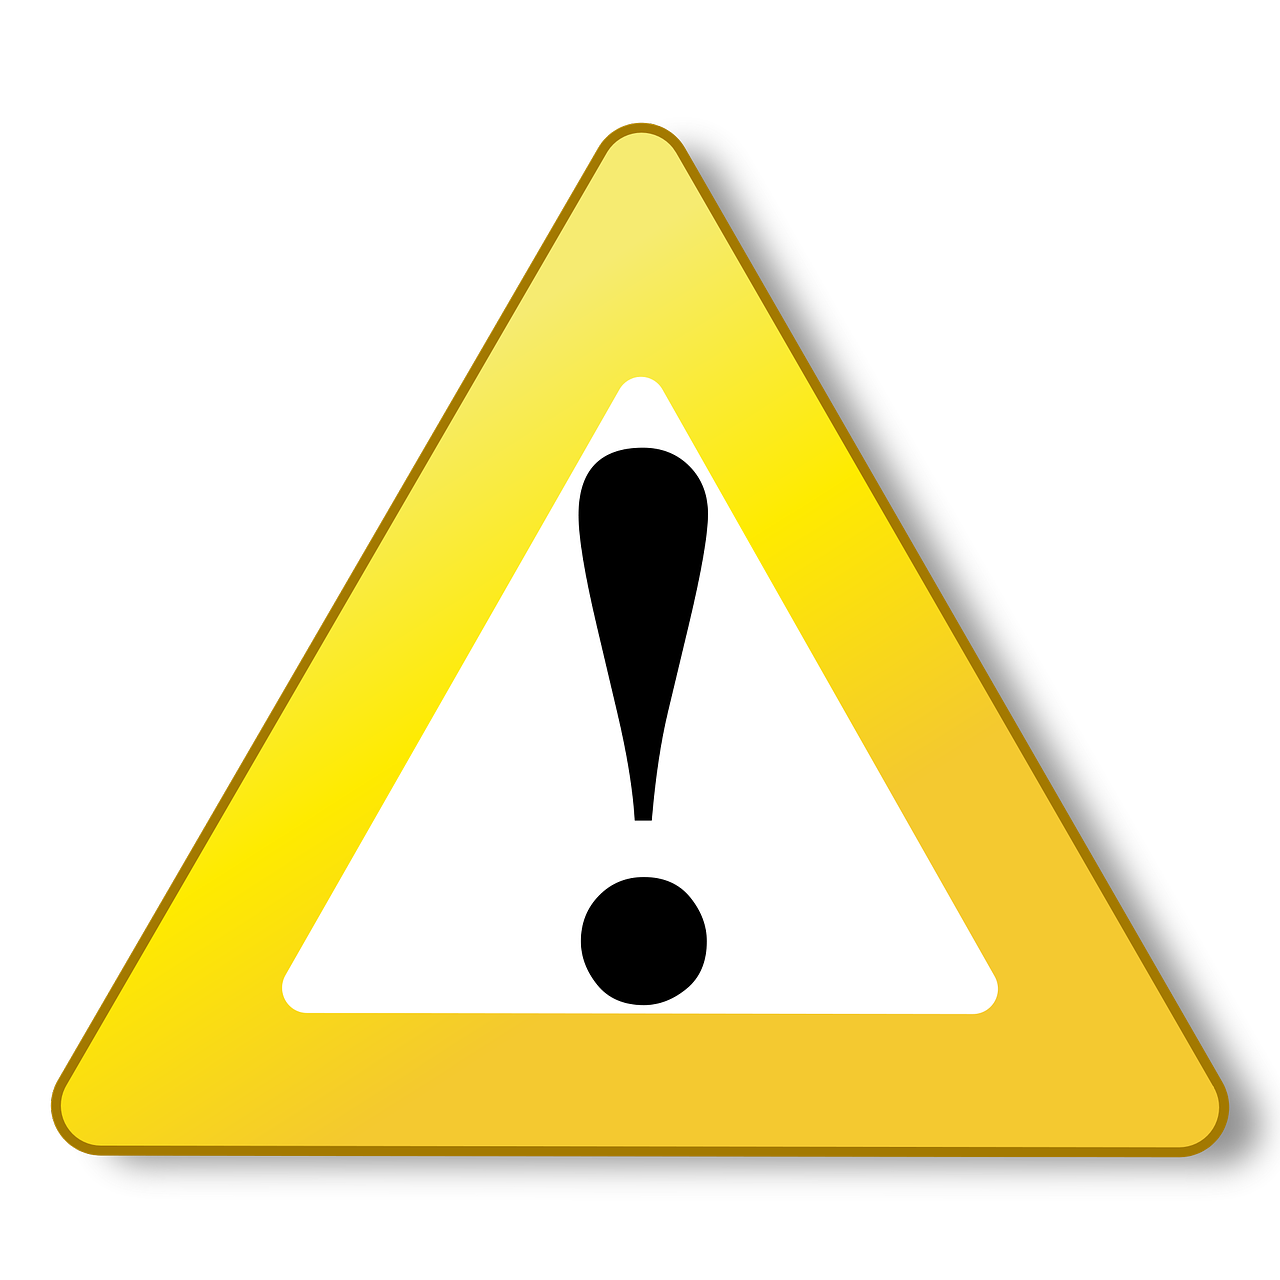 warnschild,warning triangle,attention,exclamation point,warning,shield,traffic sign,road sign,street sign,hazardous point,free pictures, free photos, free images, royalty free, free illustrations, public domain